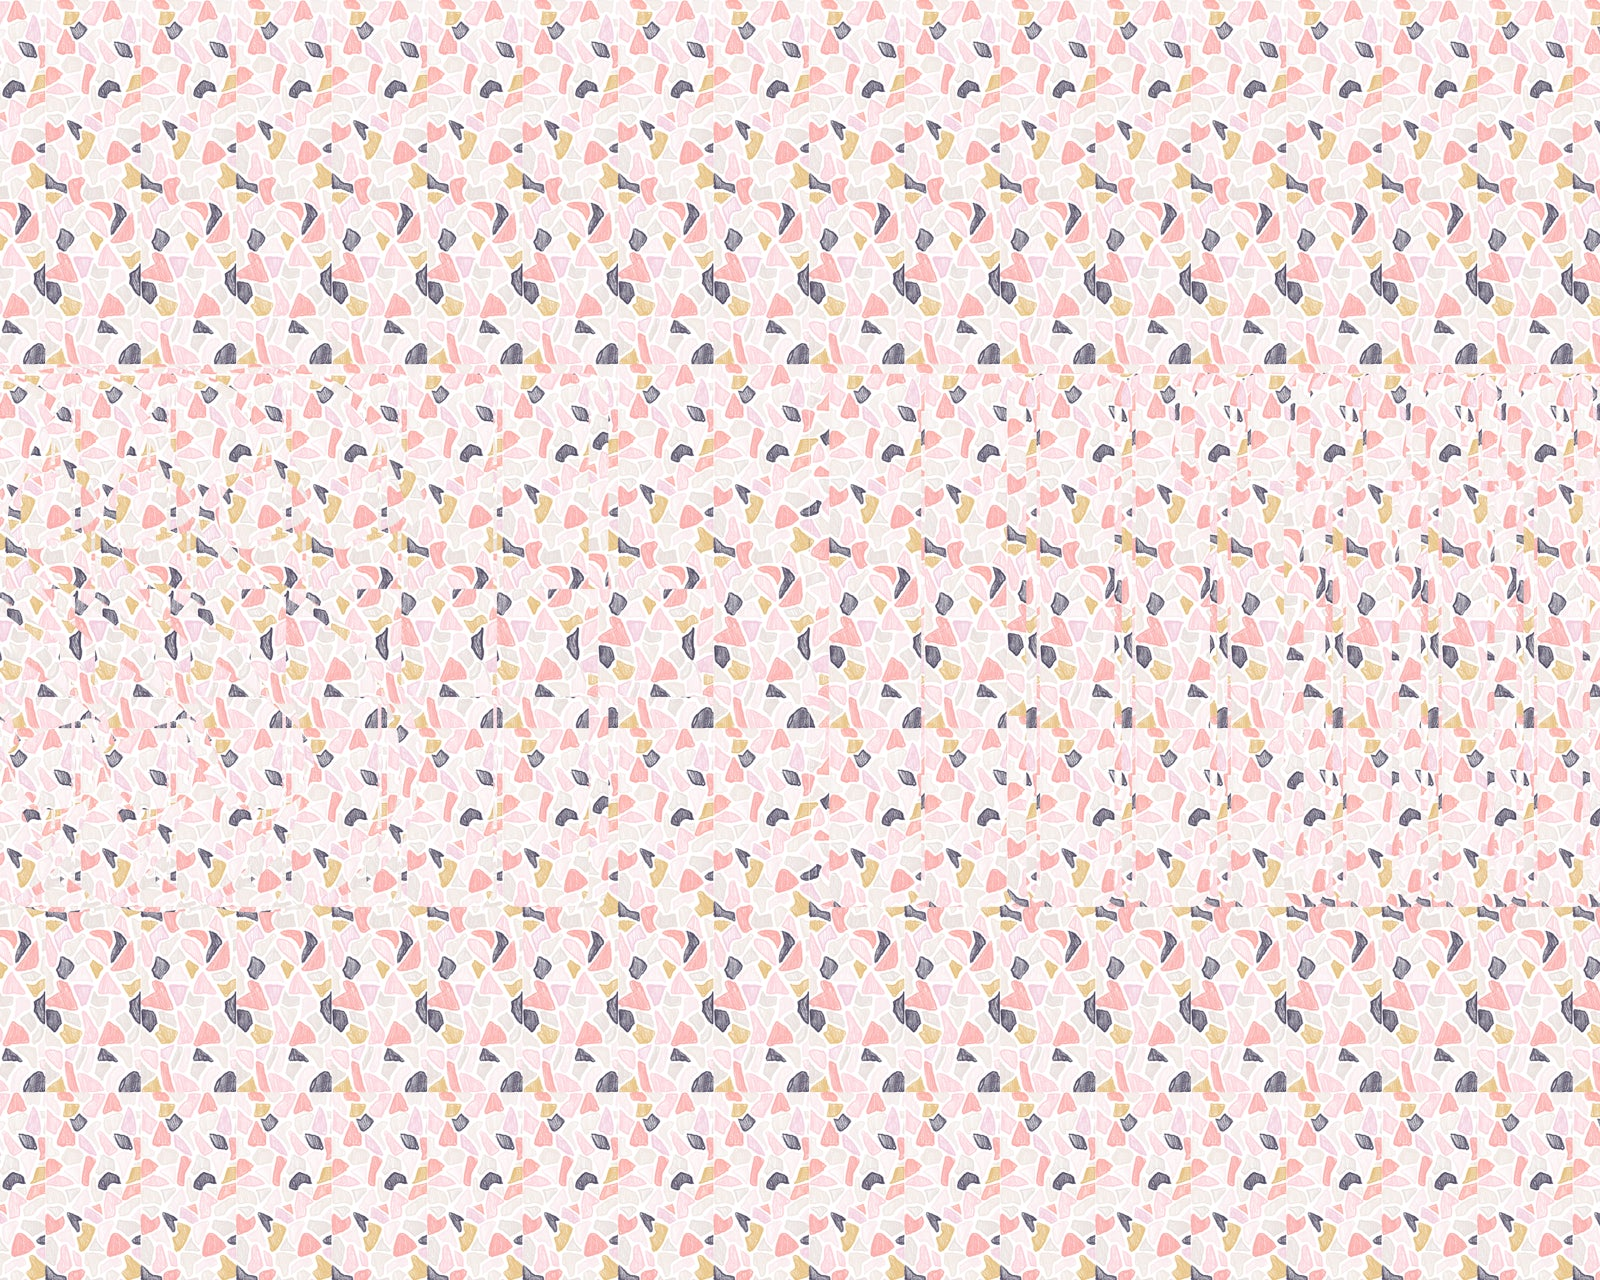 pink shit magic eye stereogram terrazzo illustration drawing pattern design modern decor art drawing